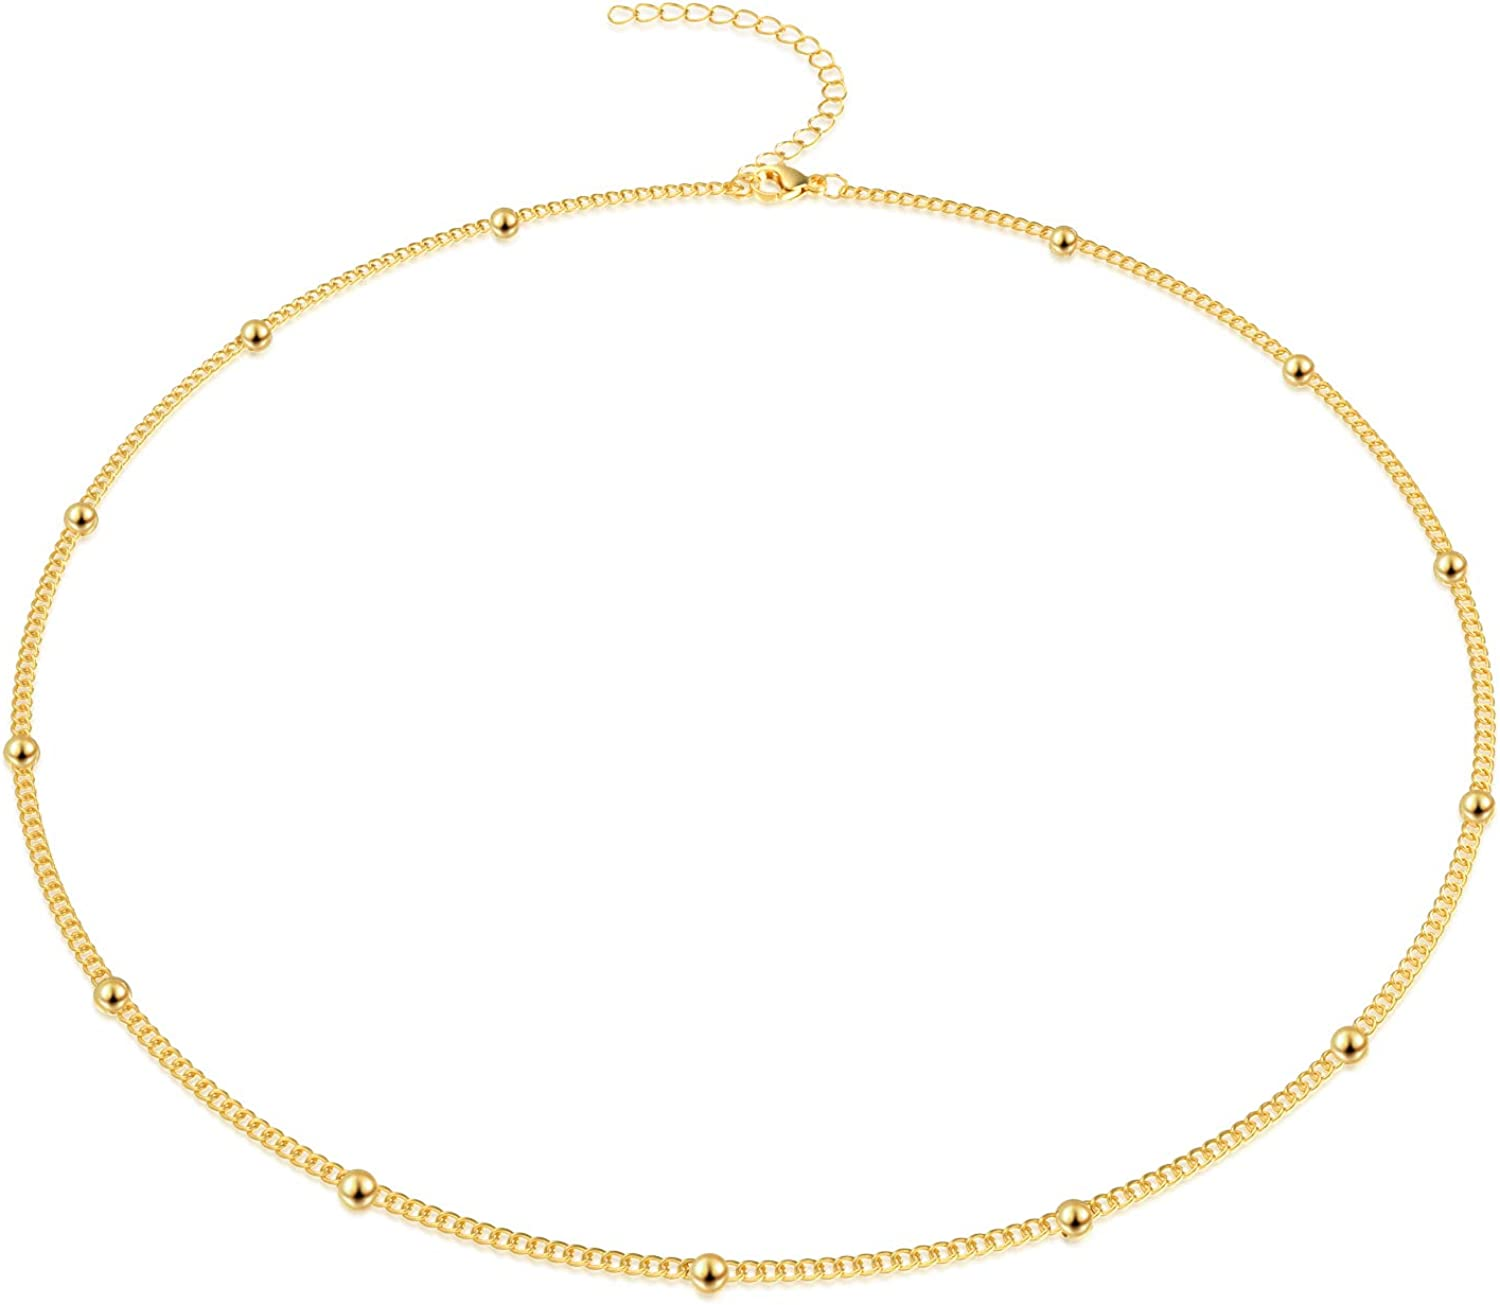 Jewlpire Gold Chain Choker Necklaces for Women - 18K Gold Plated Dainty Satellite Bead Paperclip Chain Necklace and Bracelet Set Personalized Jewelry Set Gift